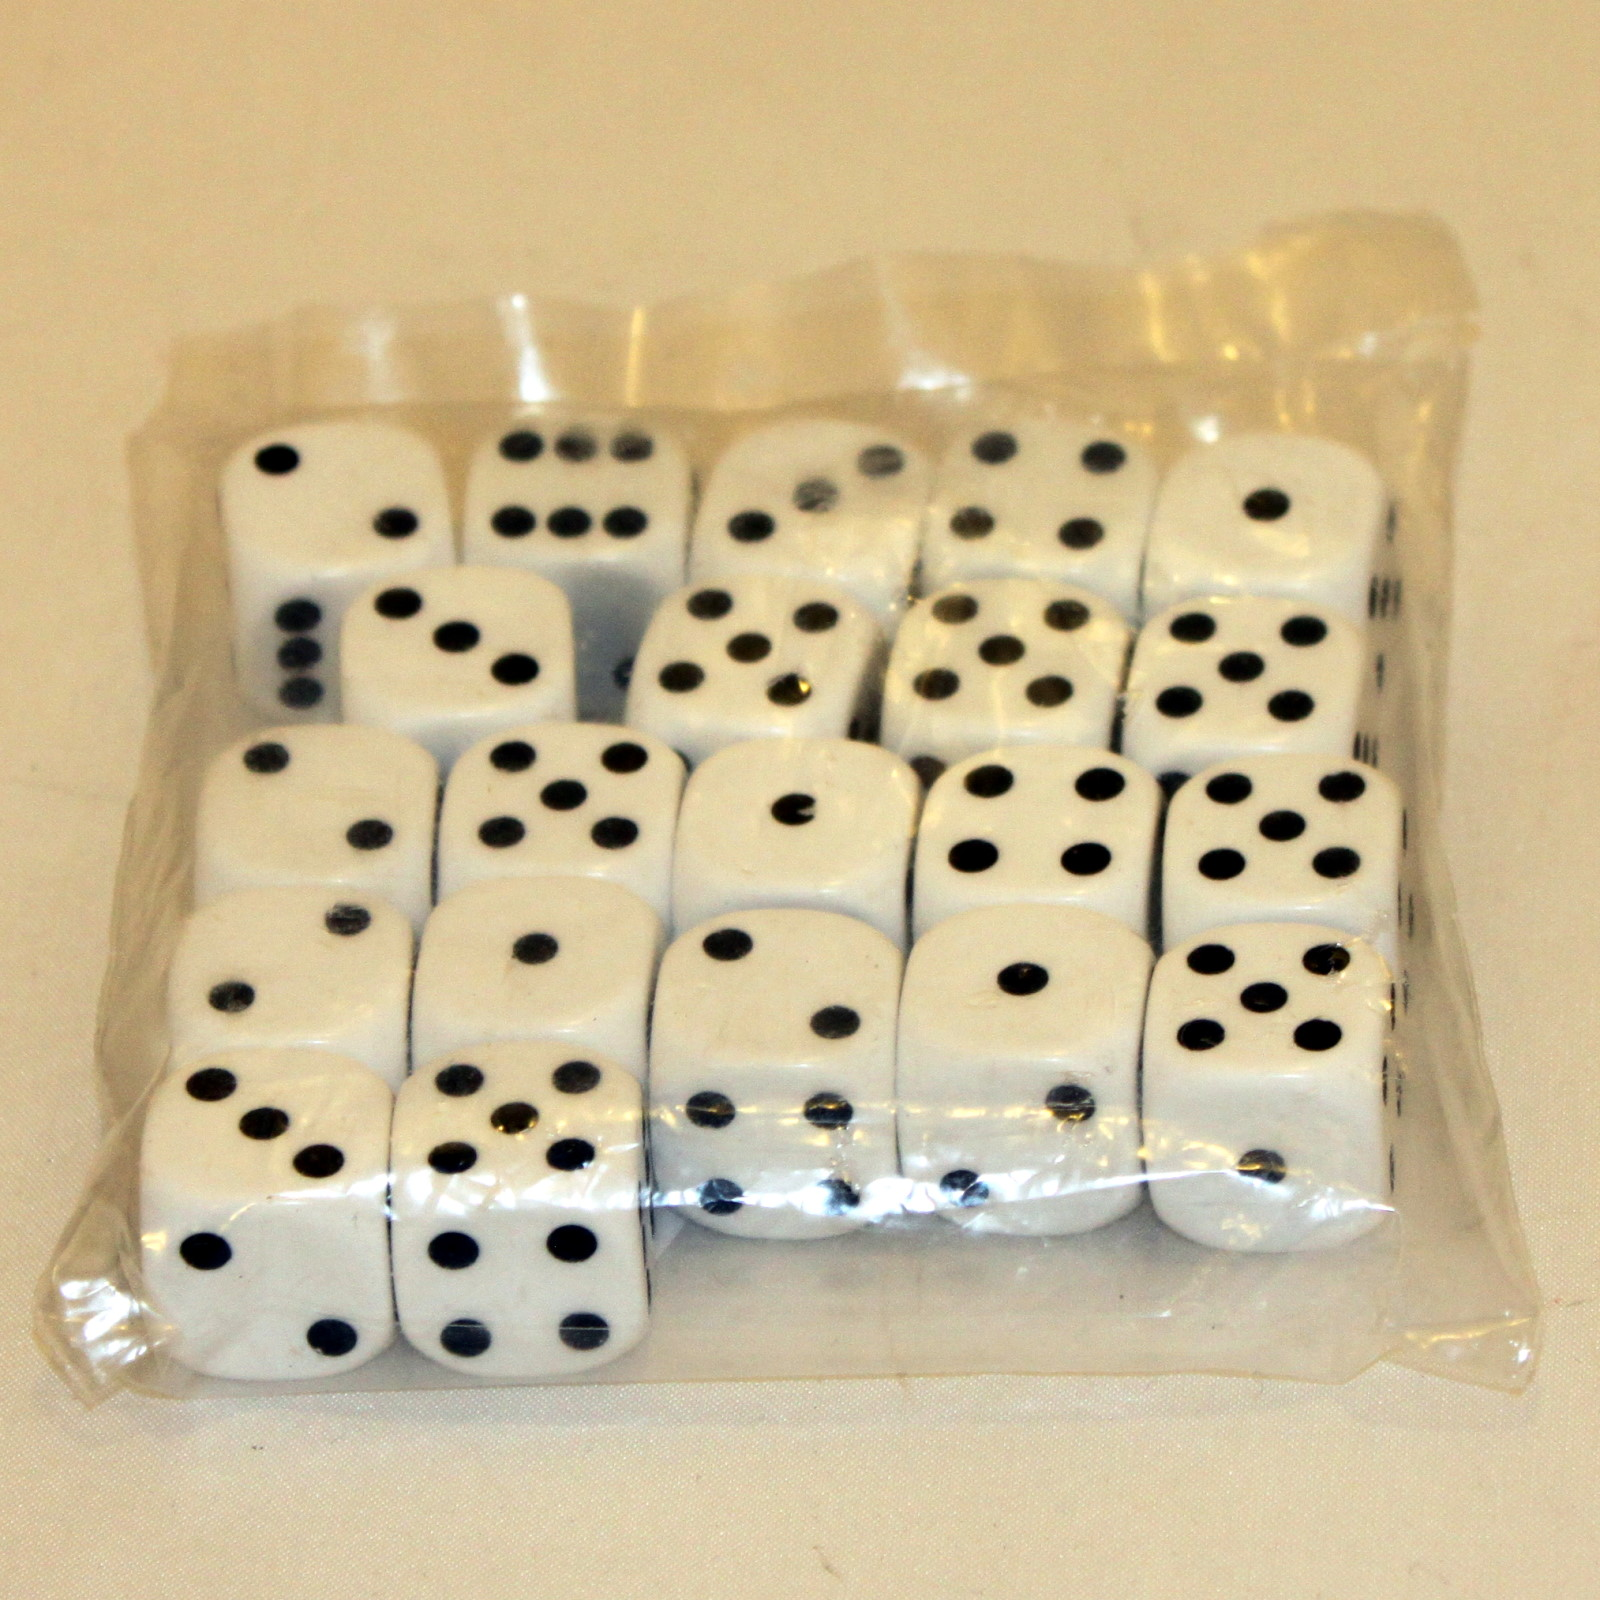 Deluxe Dice Set for No Chance by Alakazam Magic